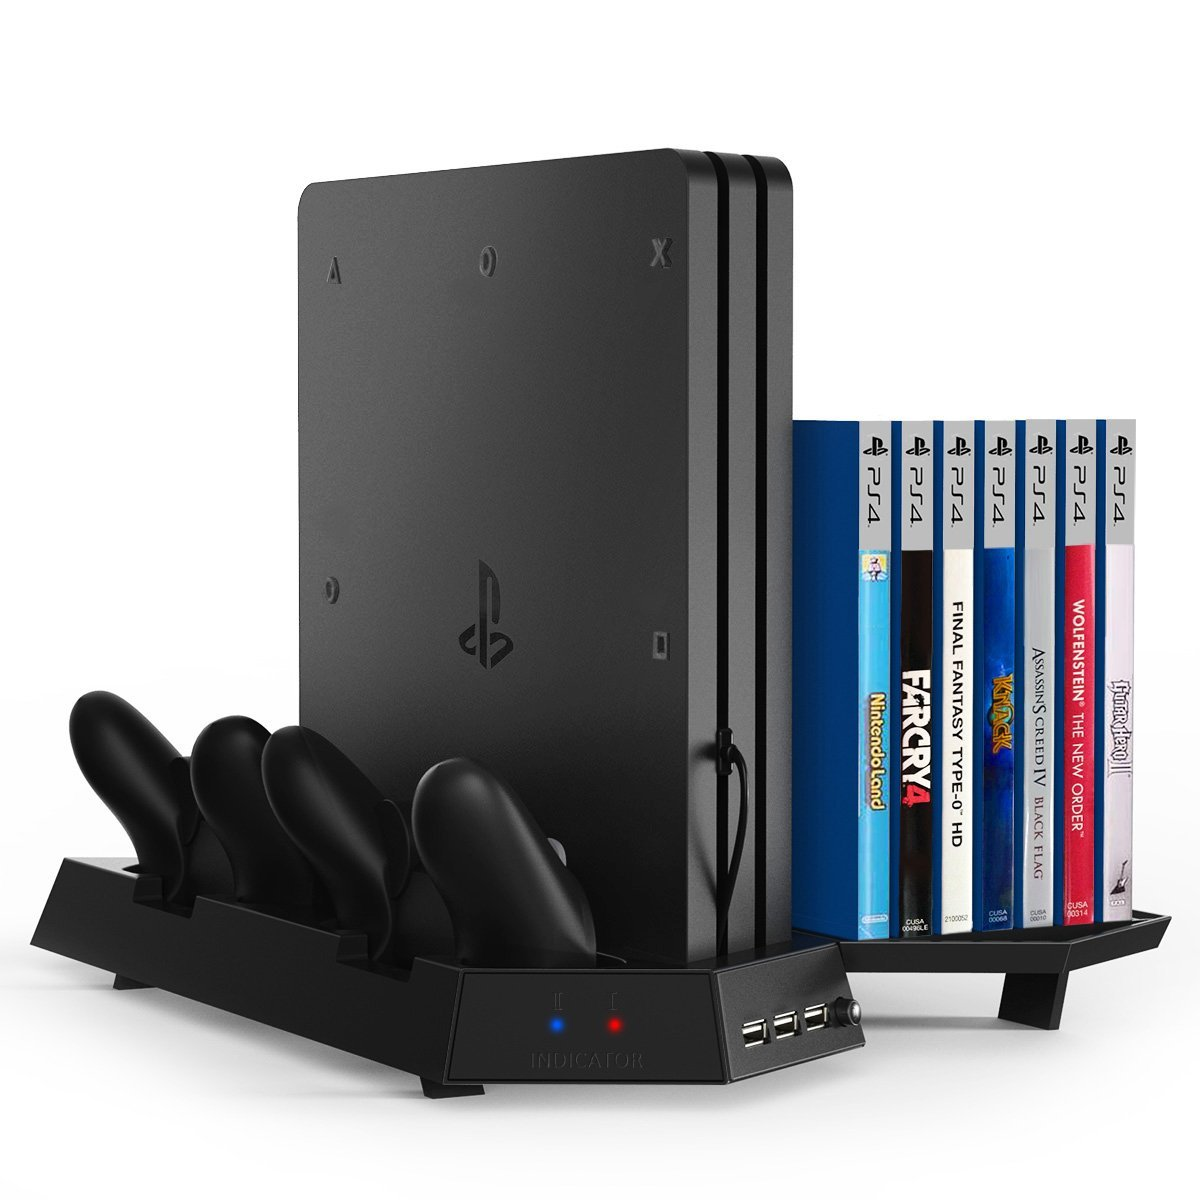 Multi Functional Vertical Stand Cooling Fan Cooler For Ps4 Pro